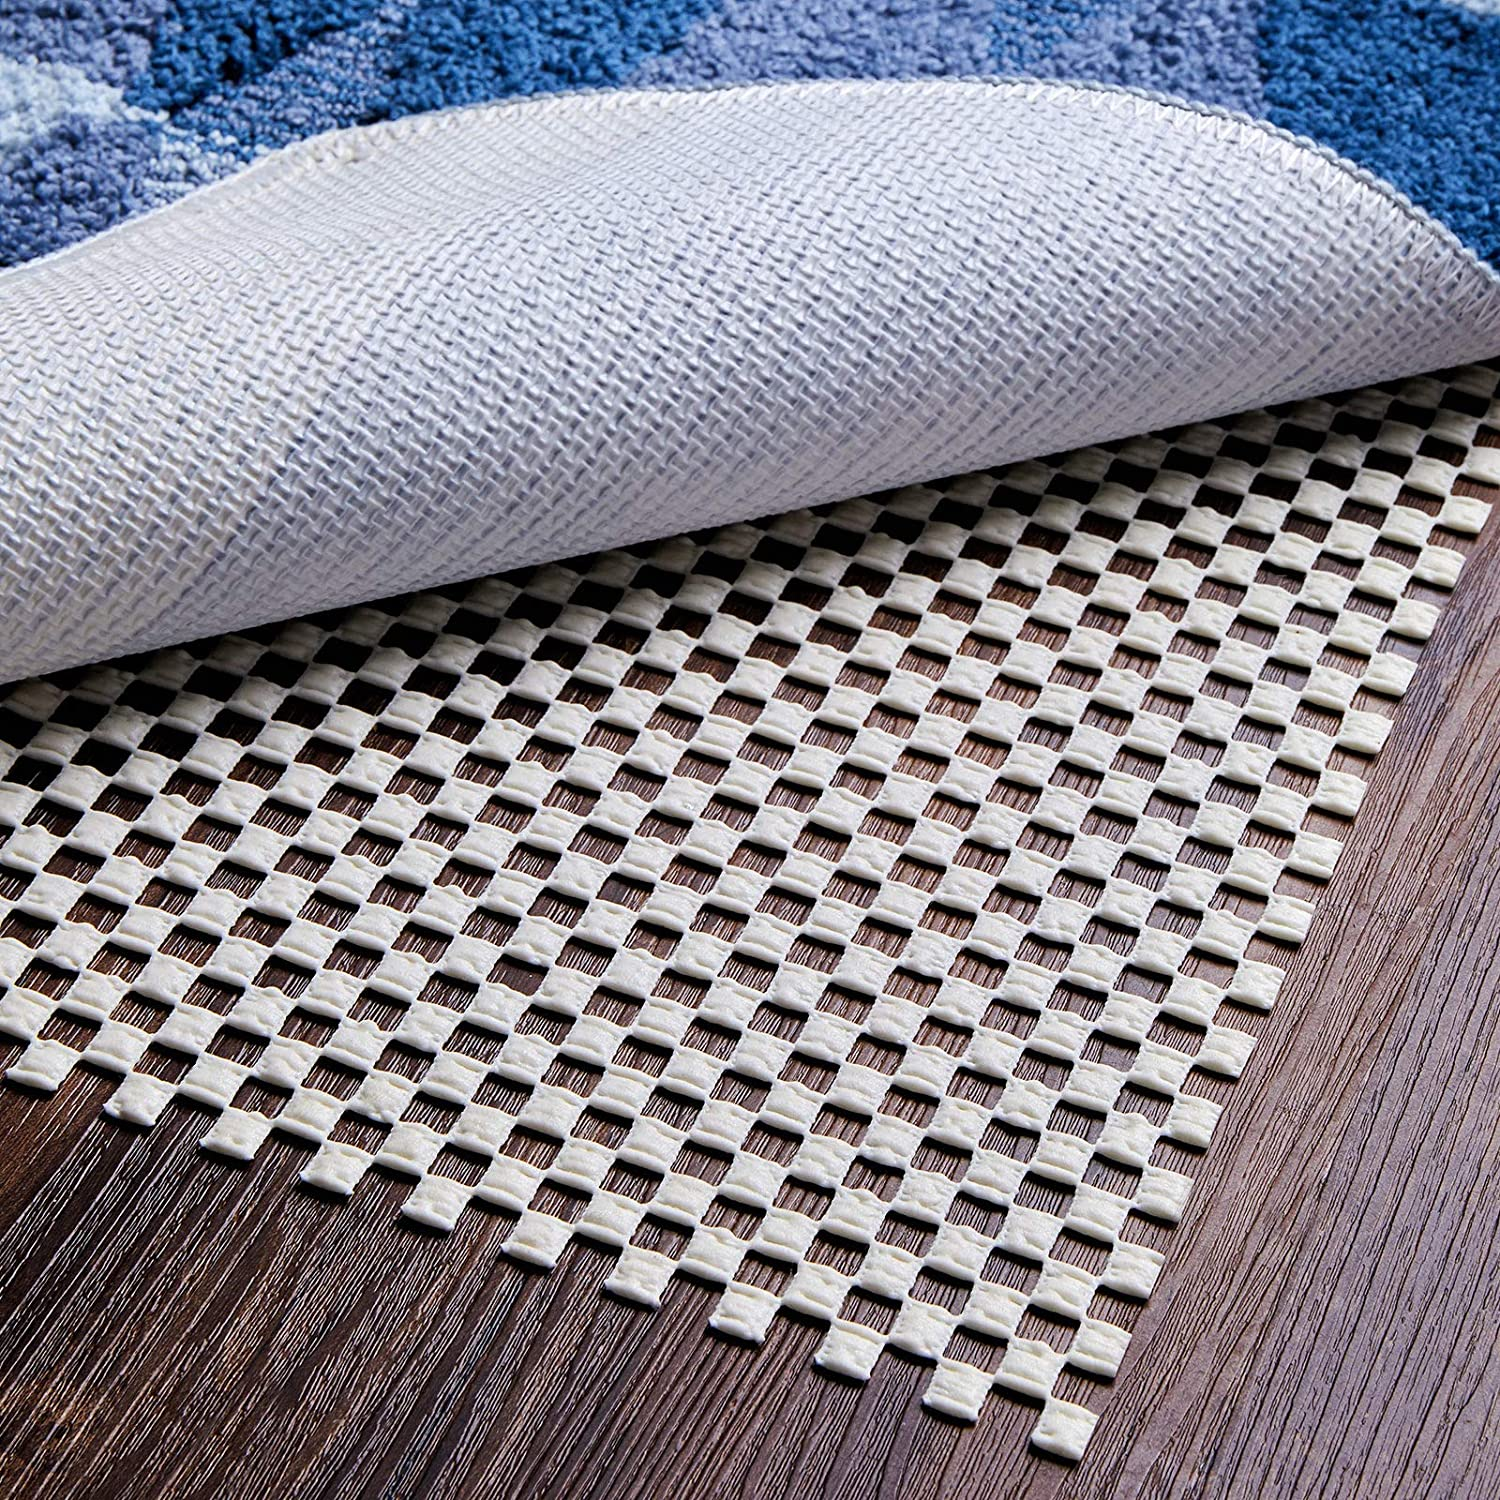 2 x 8 Ft Yome Rug Pad Gripper Non-Slip Extra Thick Pad for Any Hard Surface Floors